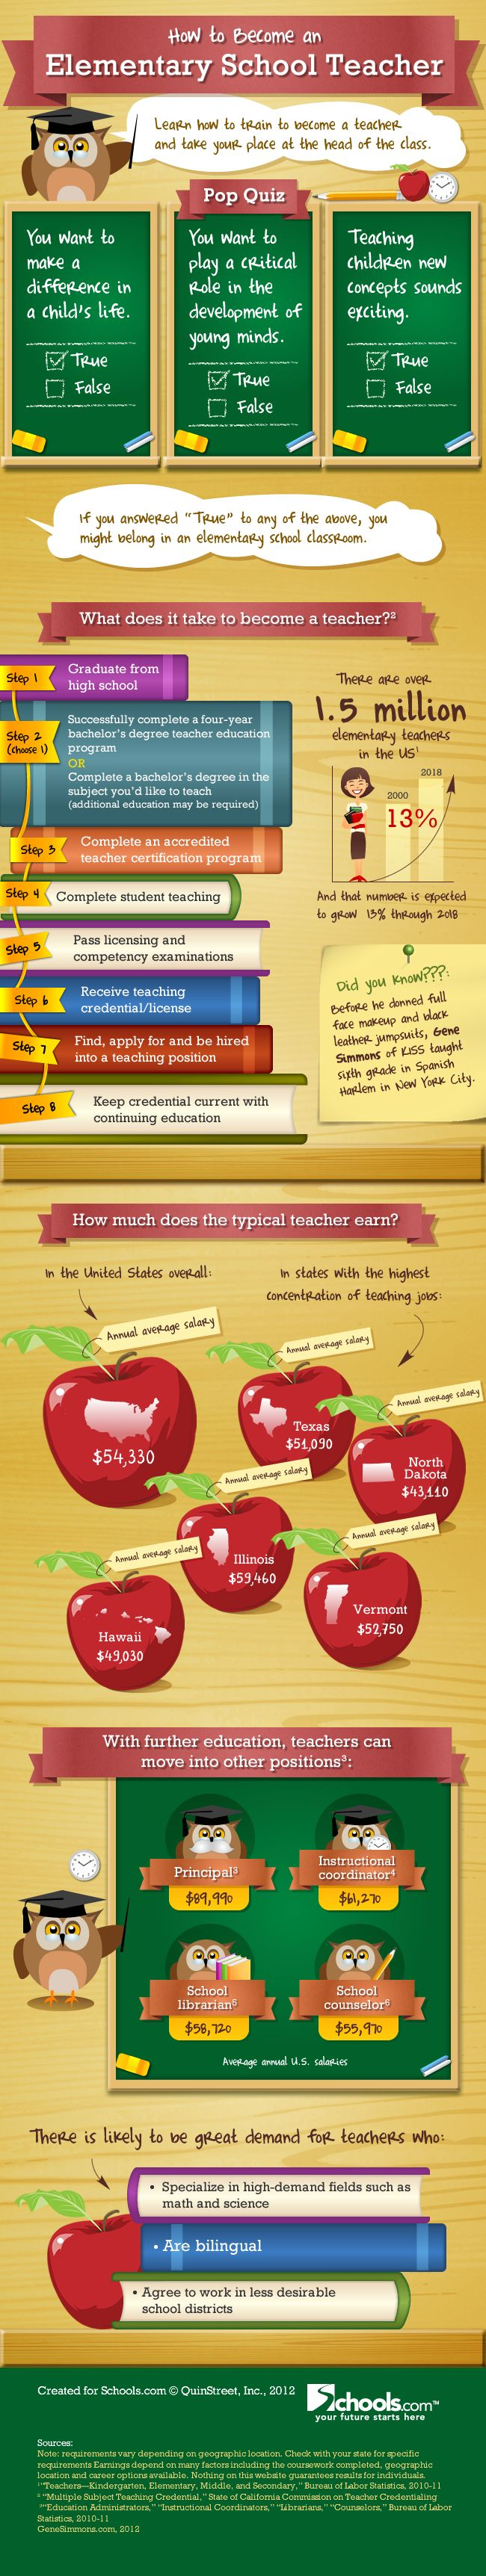 It's true what they say - teachers make the world go round! Find out how you can become a teacher with this infographic!